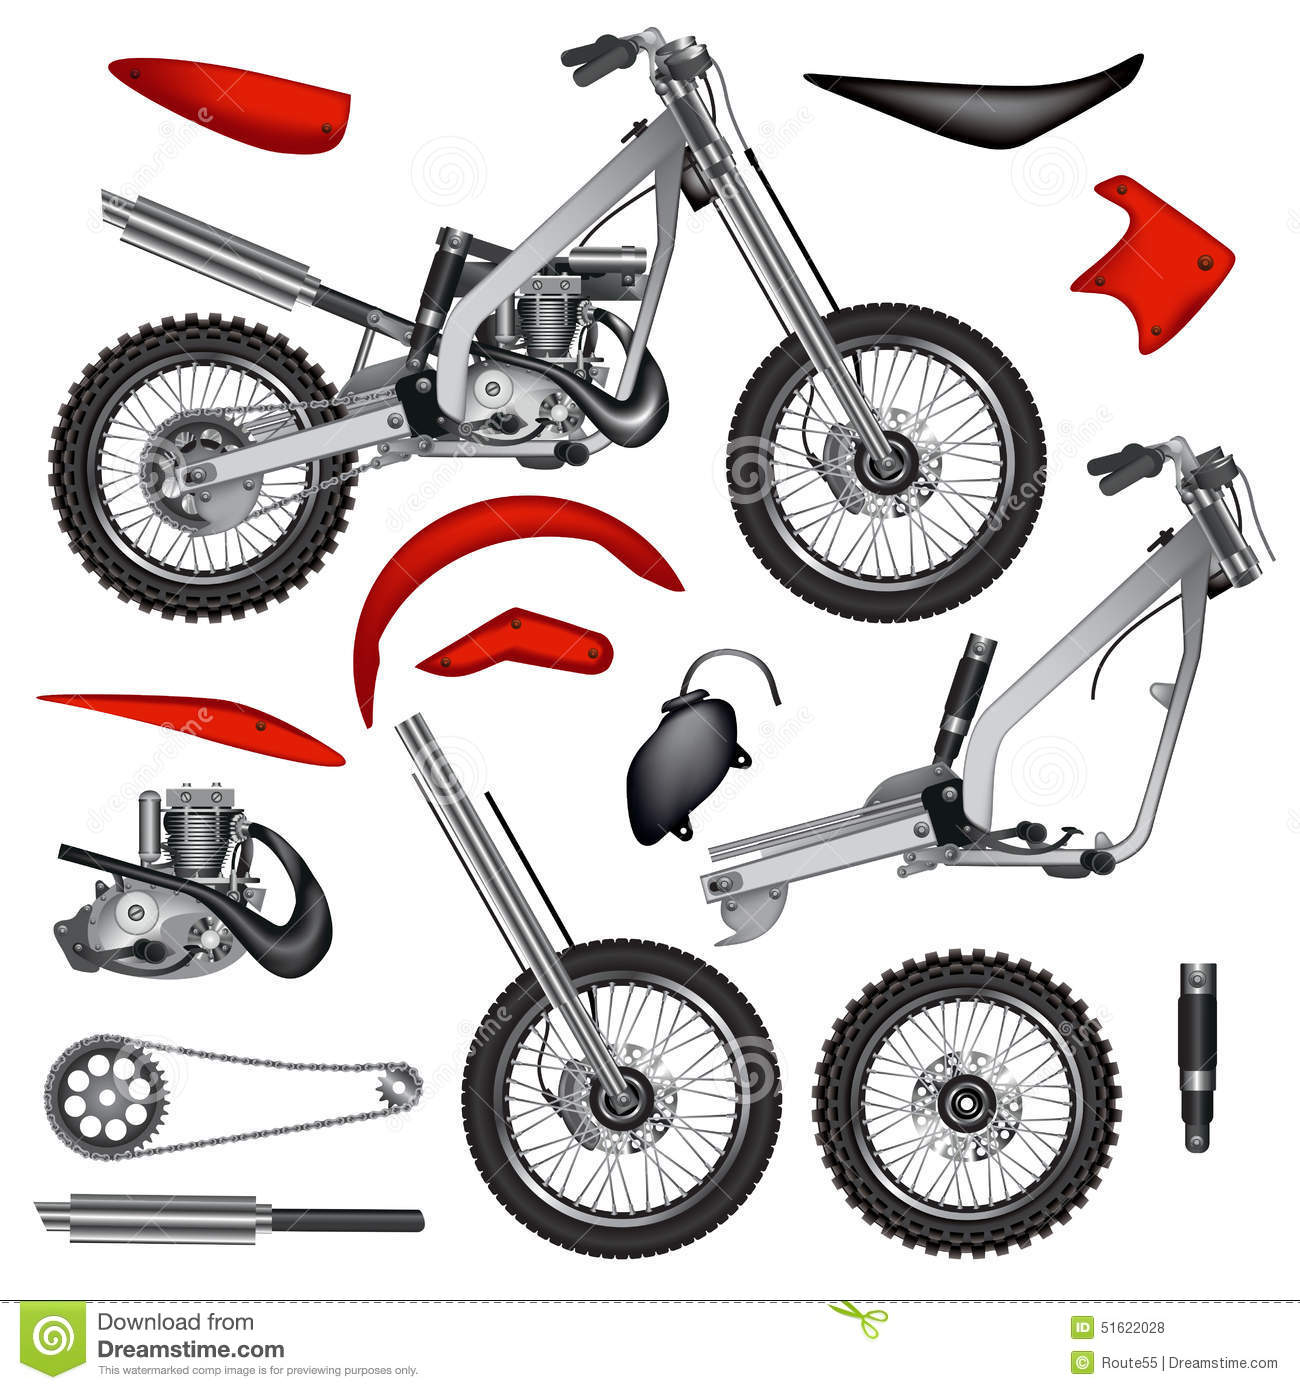 Motorcycle parts isola...